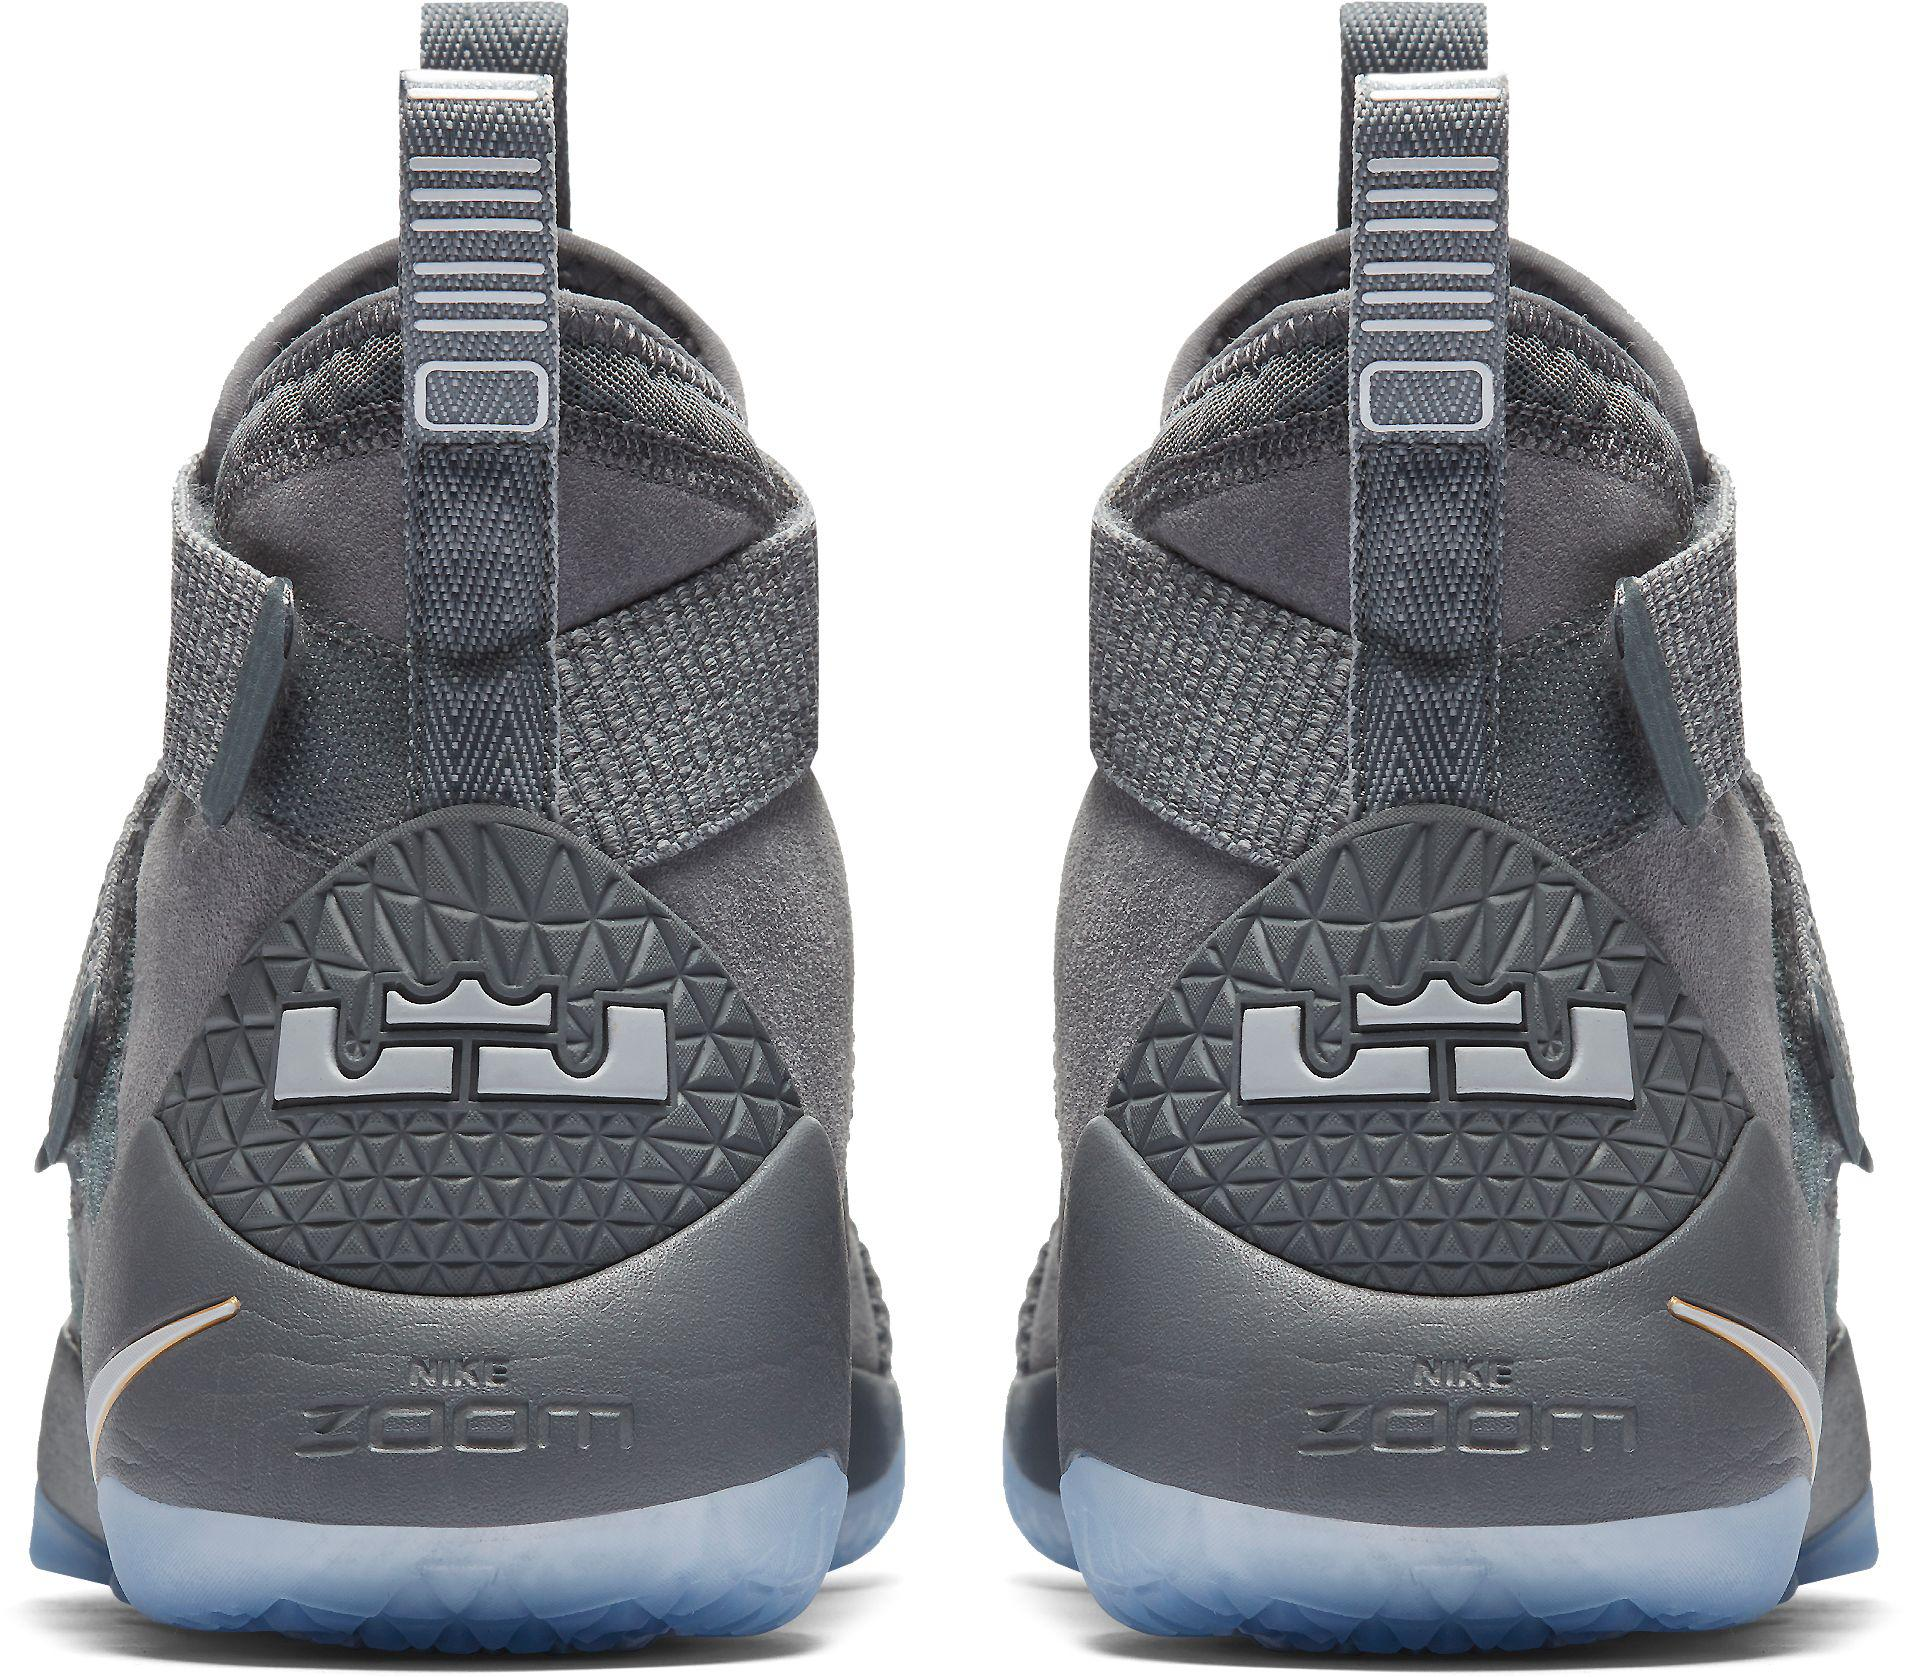 7863e9c45af4 Lyst - Nike Zoom Lebron Soldier Xi Basketball Shoes in Gray for Men